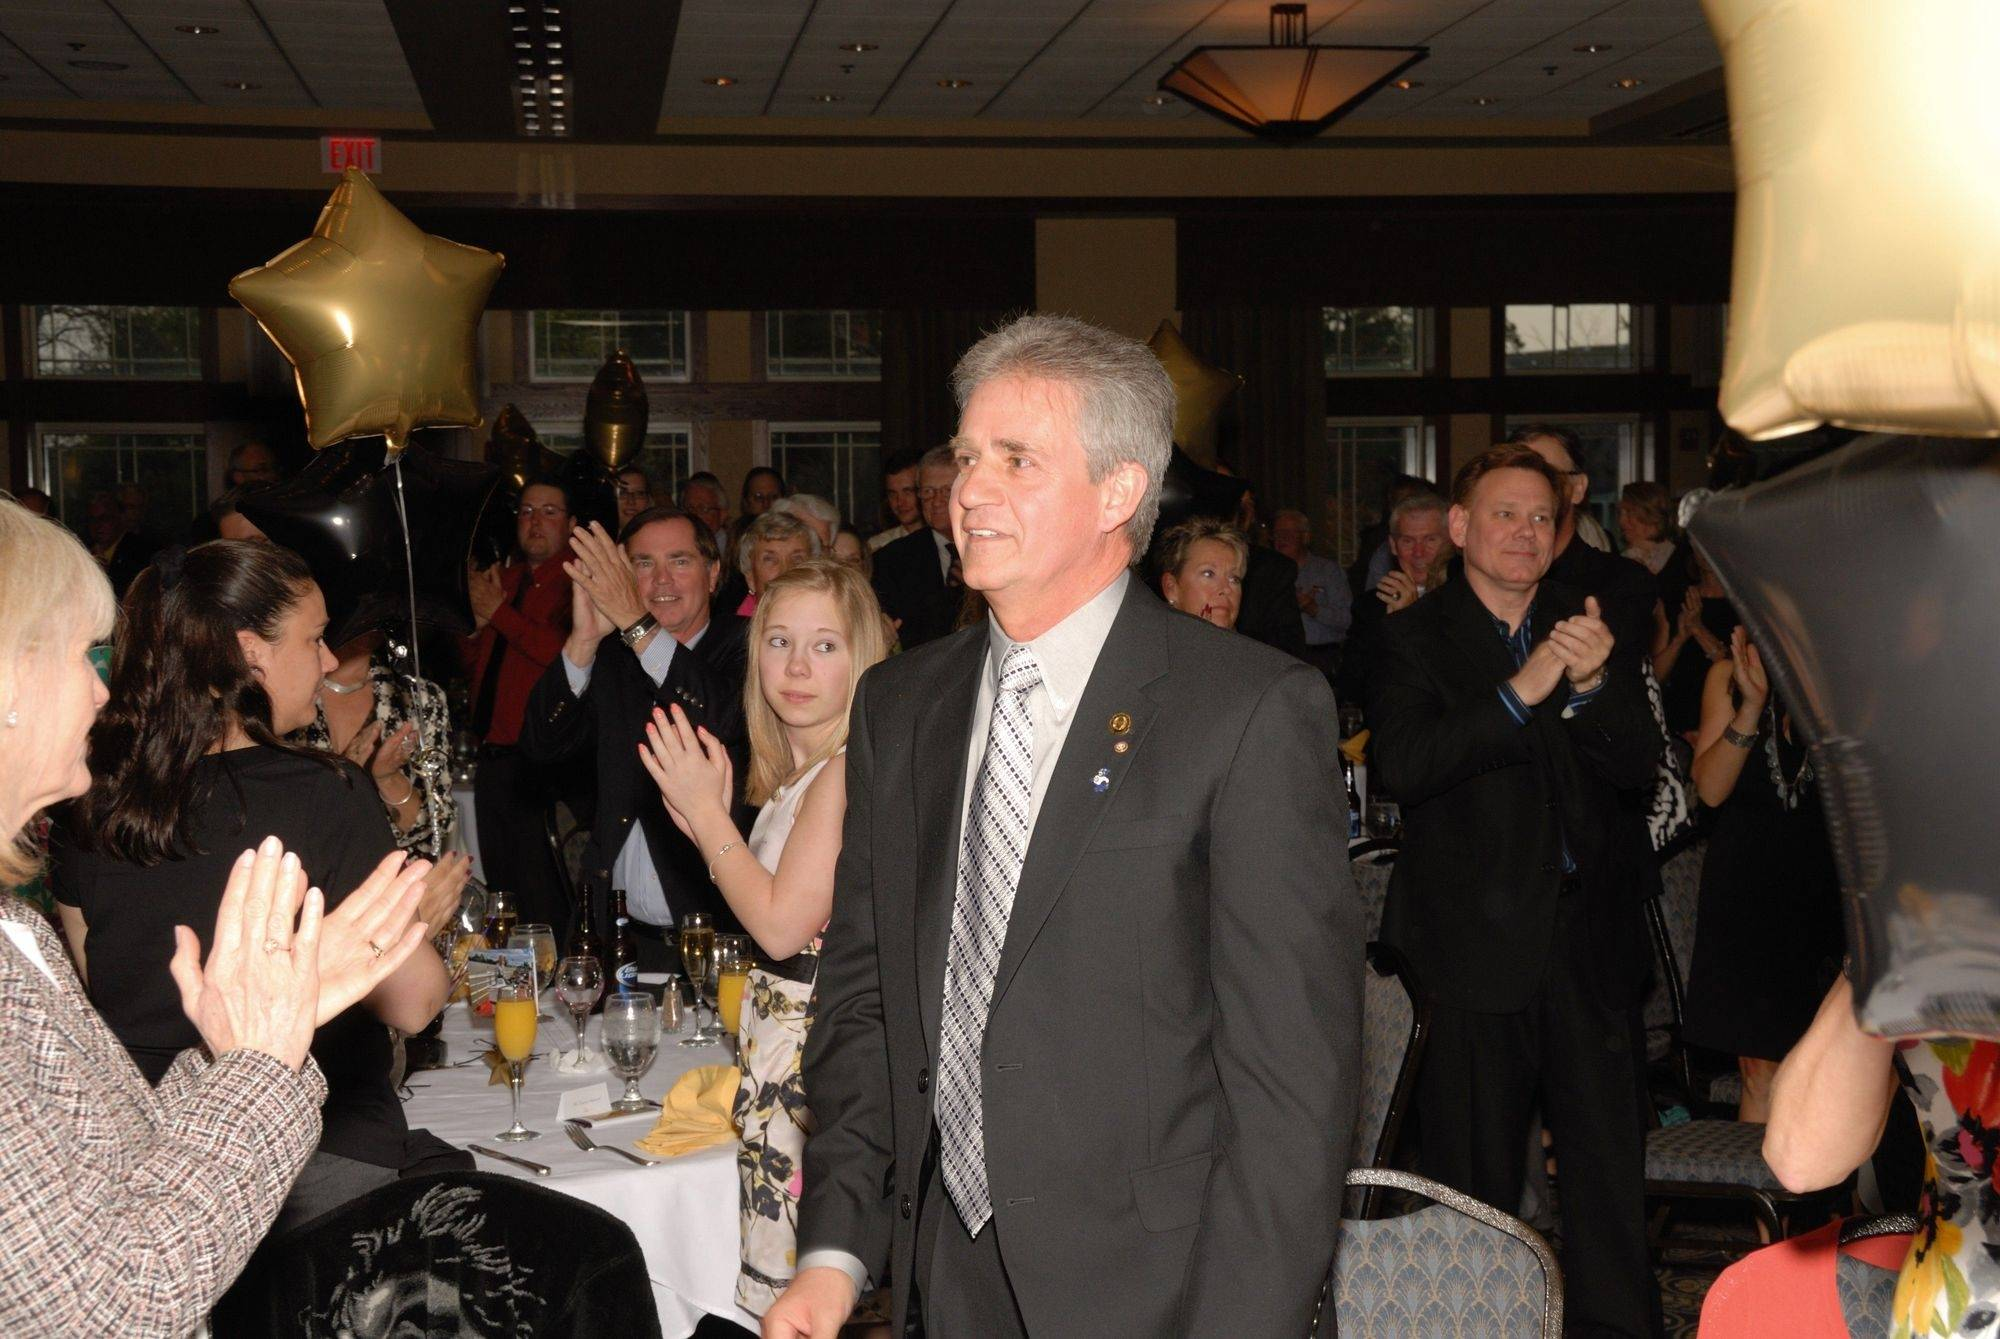 Longtime Buffalo Grove Park District Executive Director Michael Rylko was feted at a retirement party last week.